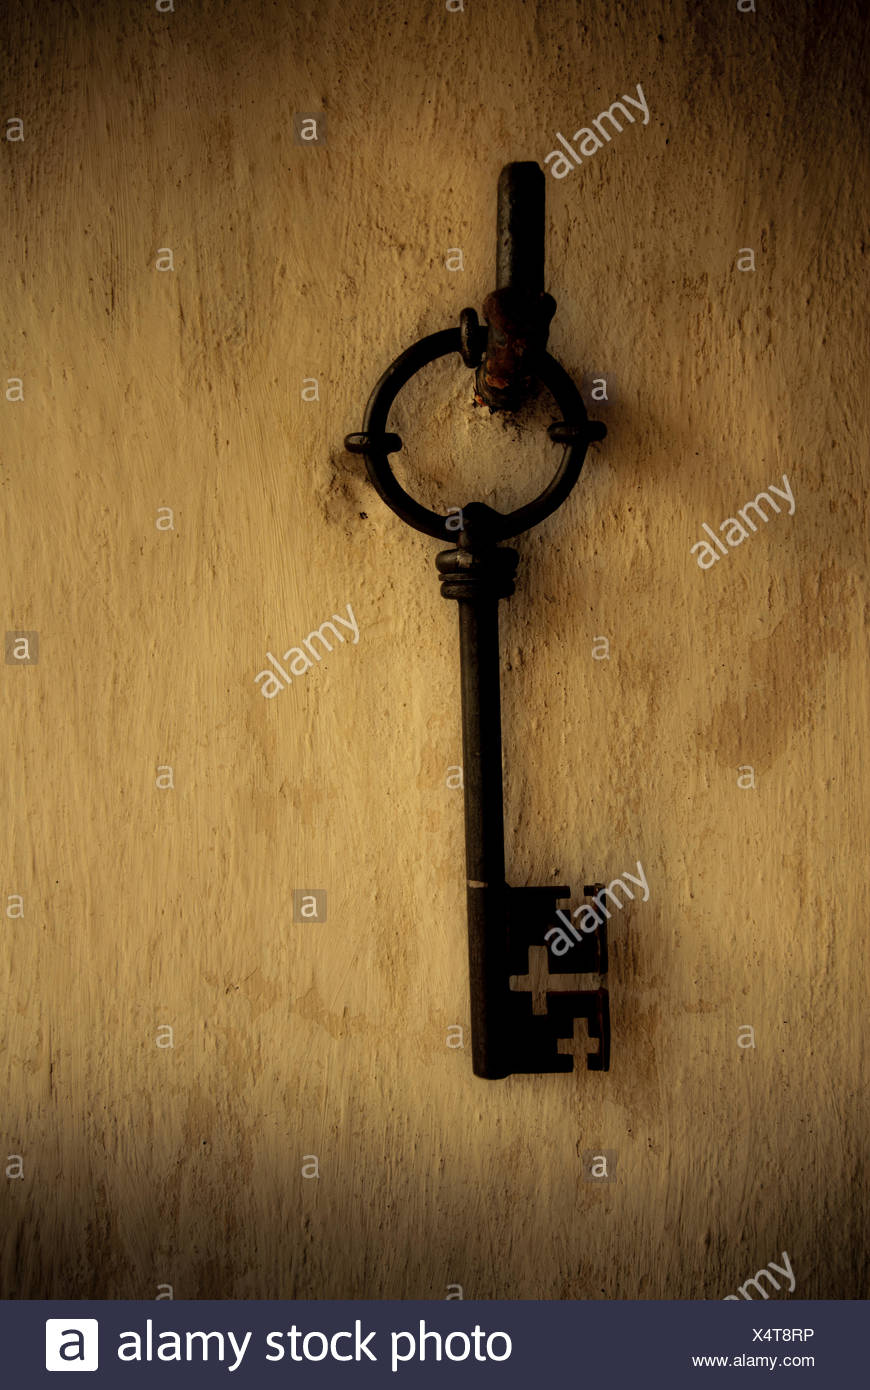 Magnificent Large Wooden Key Wall Decor Ideas - The Wall Art ...